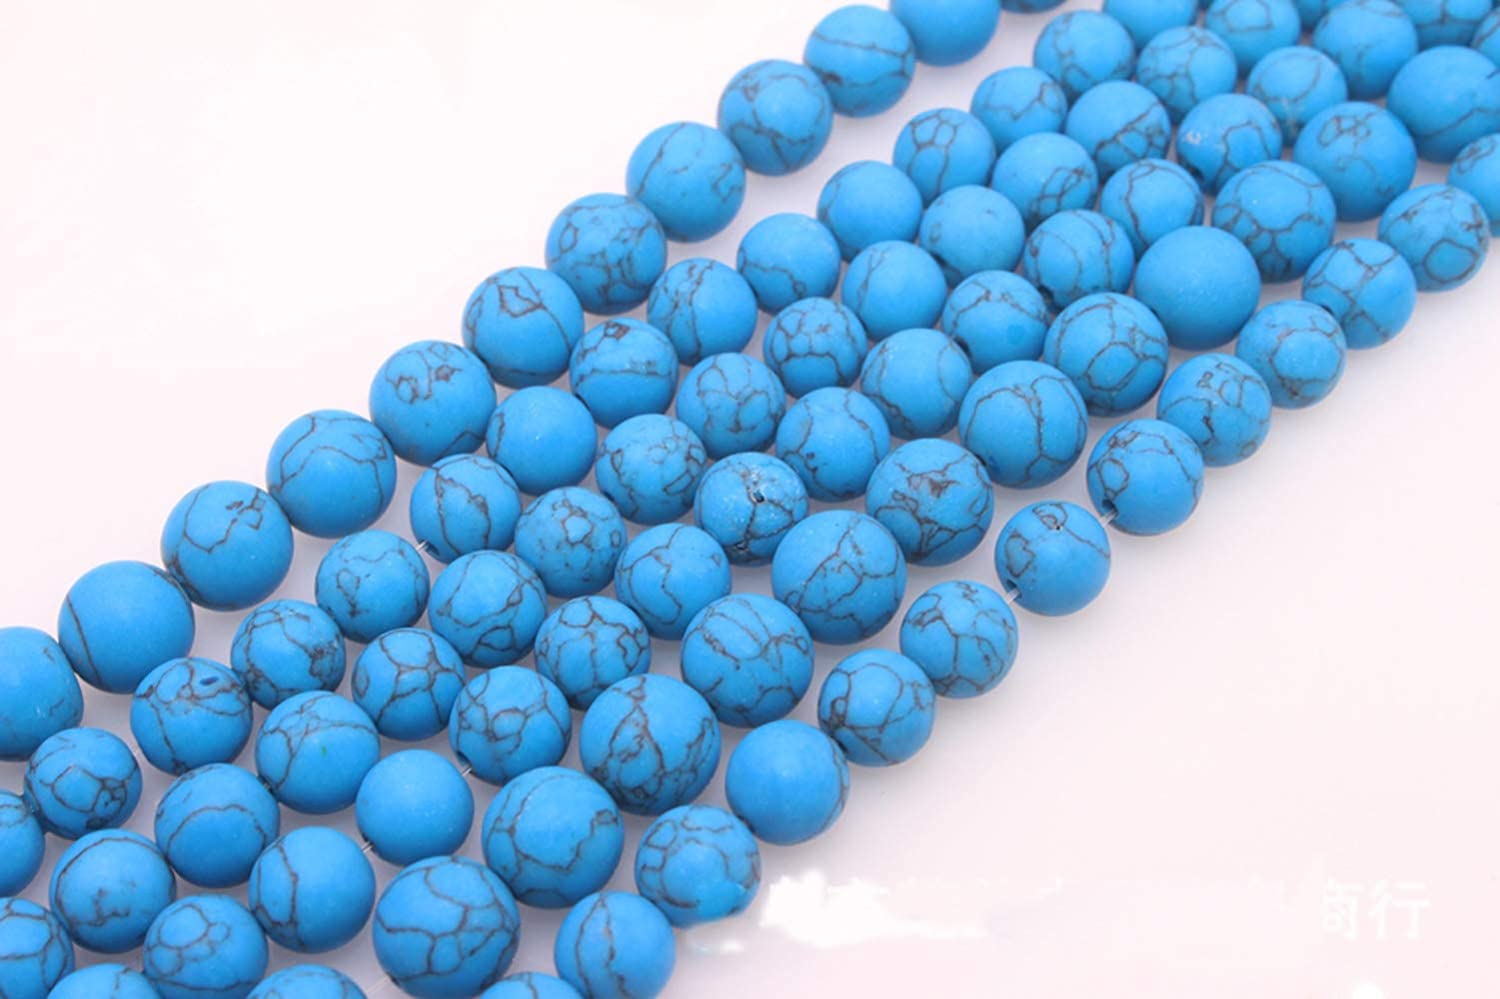 Natural Matten Dark Blue turquoise Round Loose Beads for Bracelet Necklace Earrings Jewelry Making Crafts Design Healing